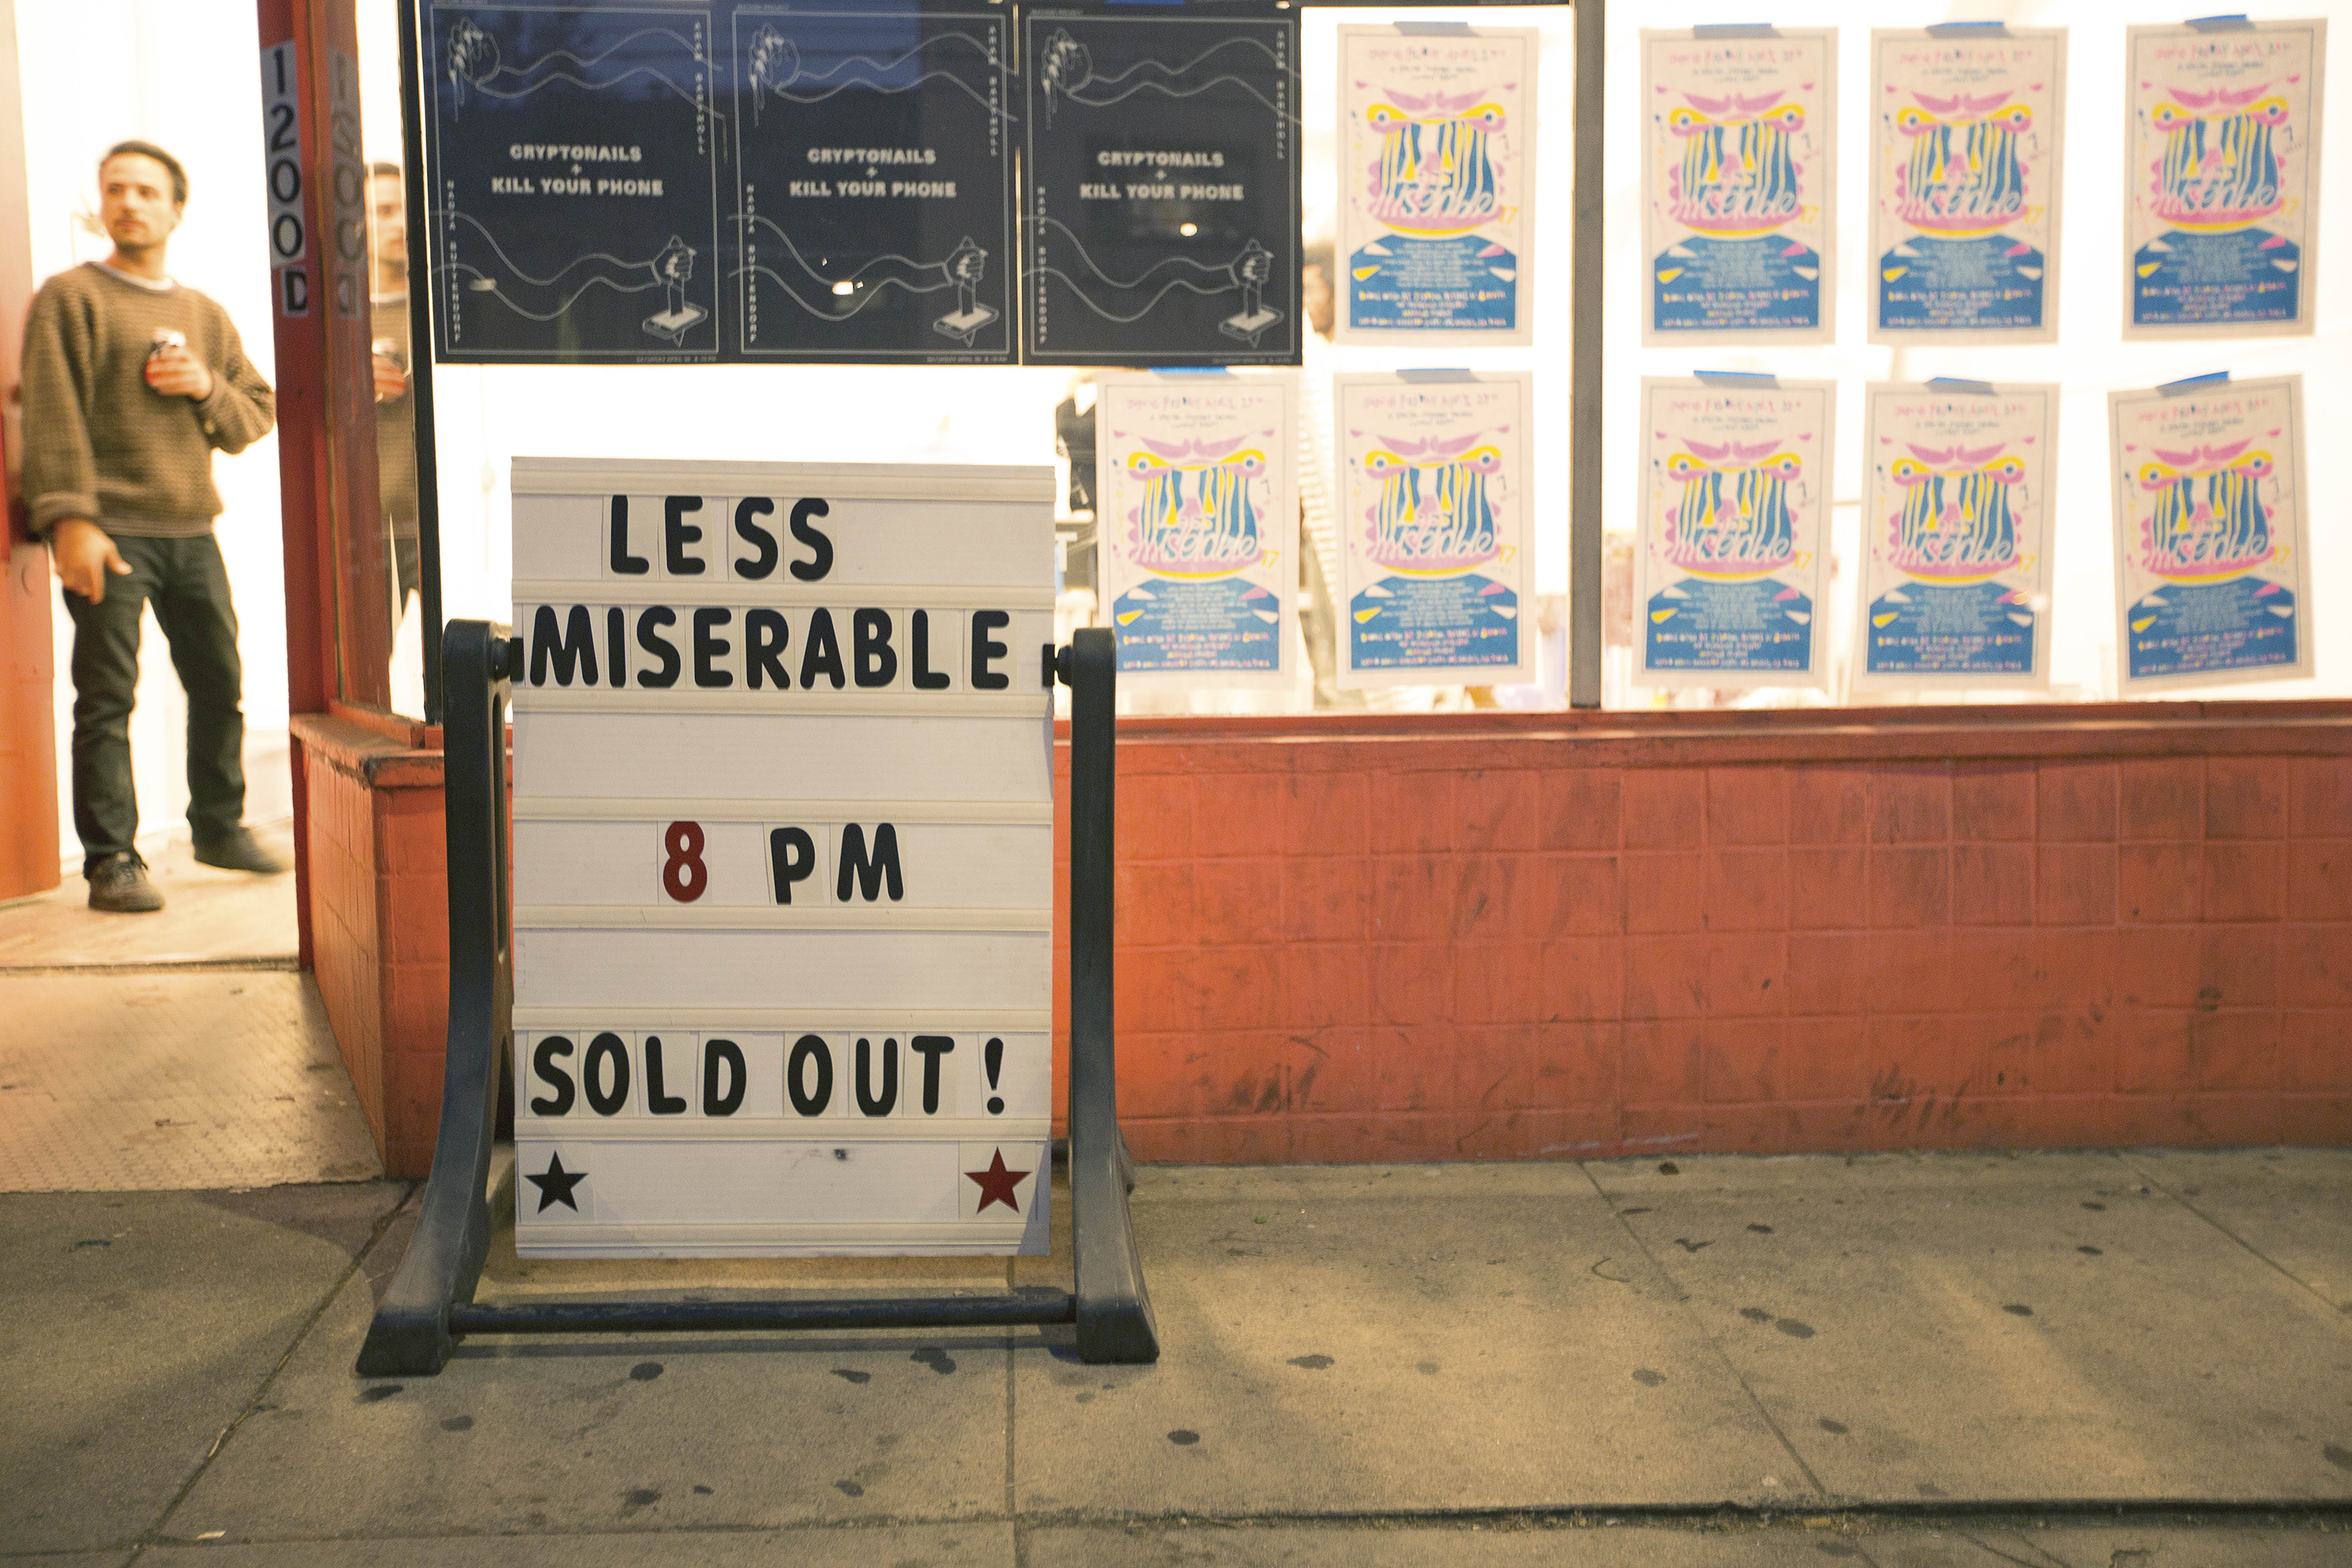 The marquee displays the comedy event Less Miserable that took place at the Machine Project shop in Echo Park, Calif. on April 29, 2016.(photo by Joshua Duarte)